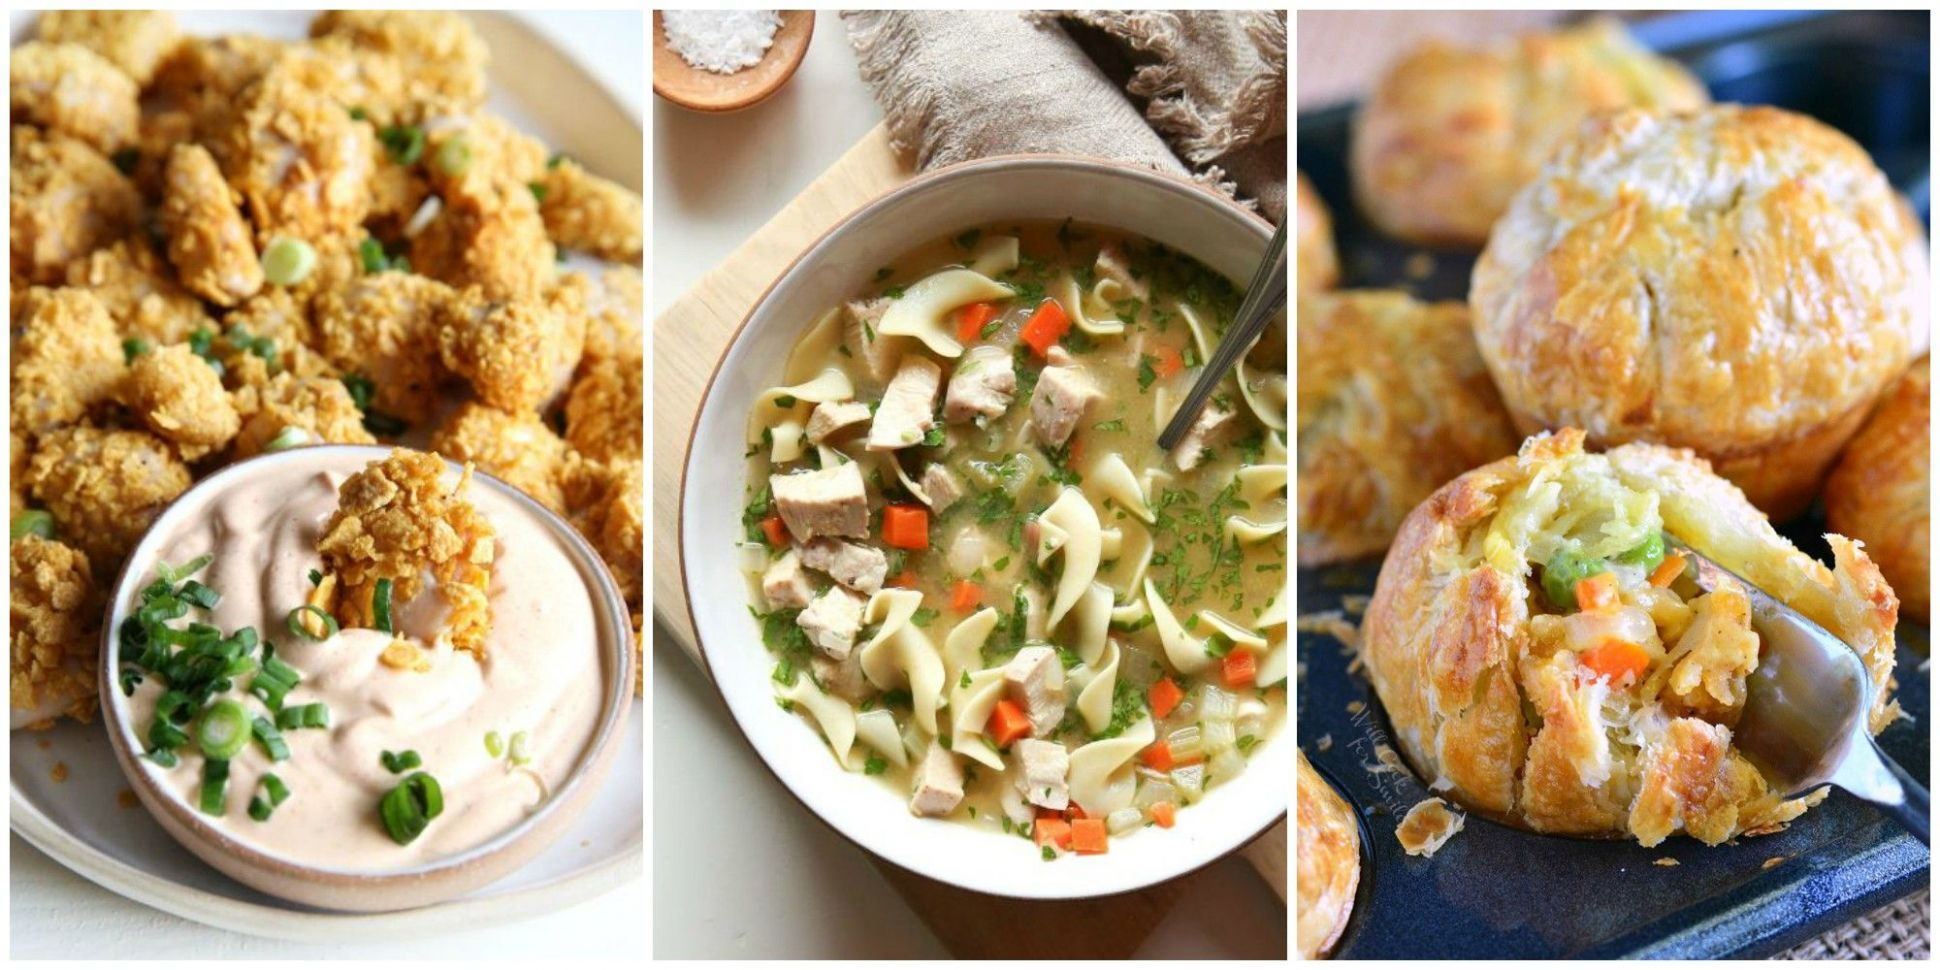 11 Easy Chicken Recipes For Kids - Best Kid-Friendly Chicken ...